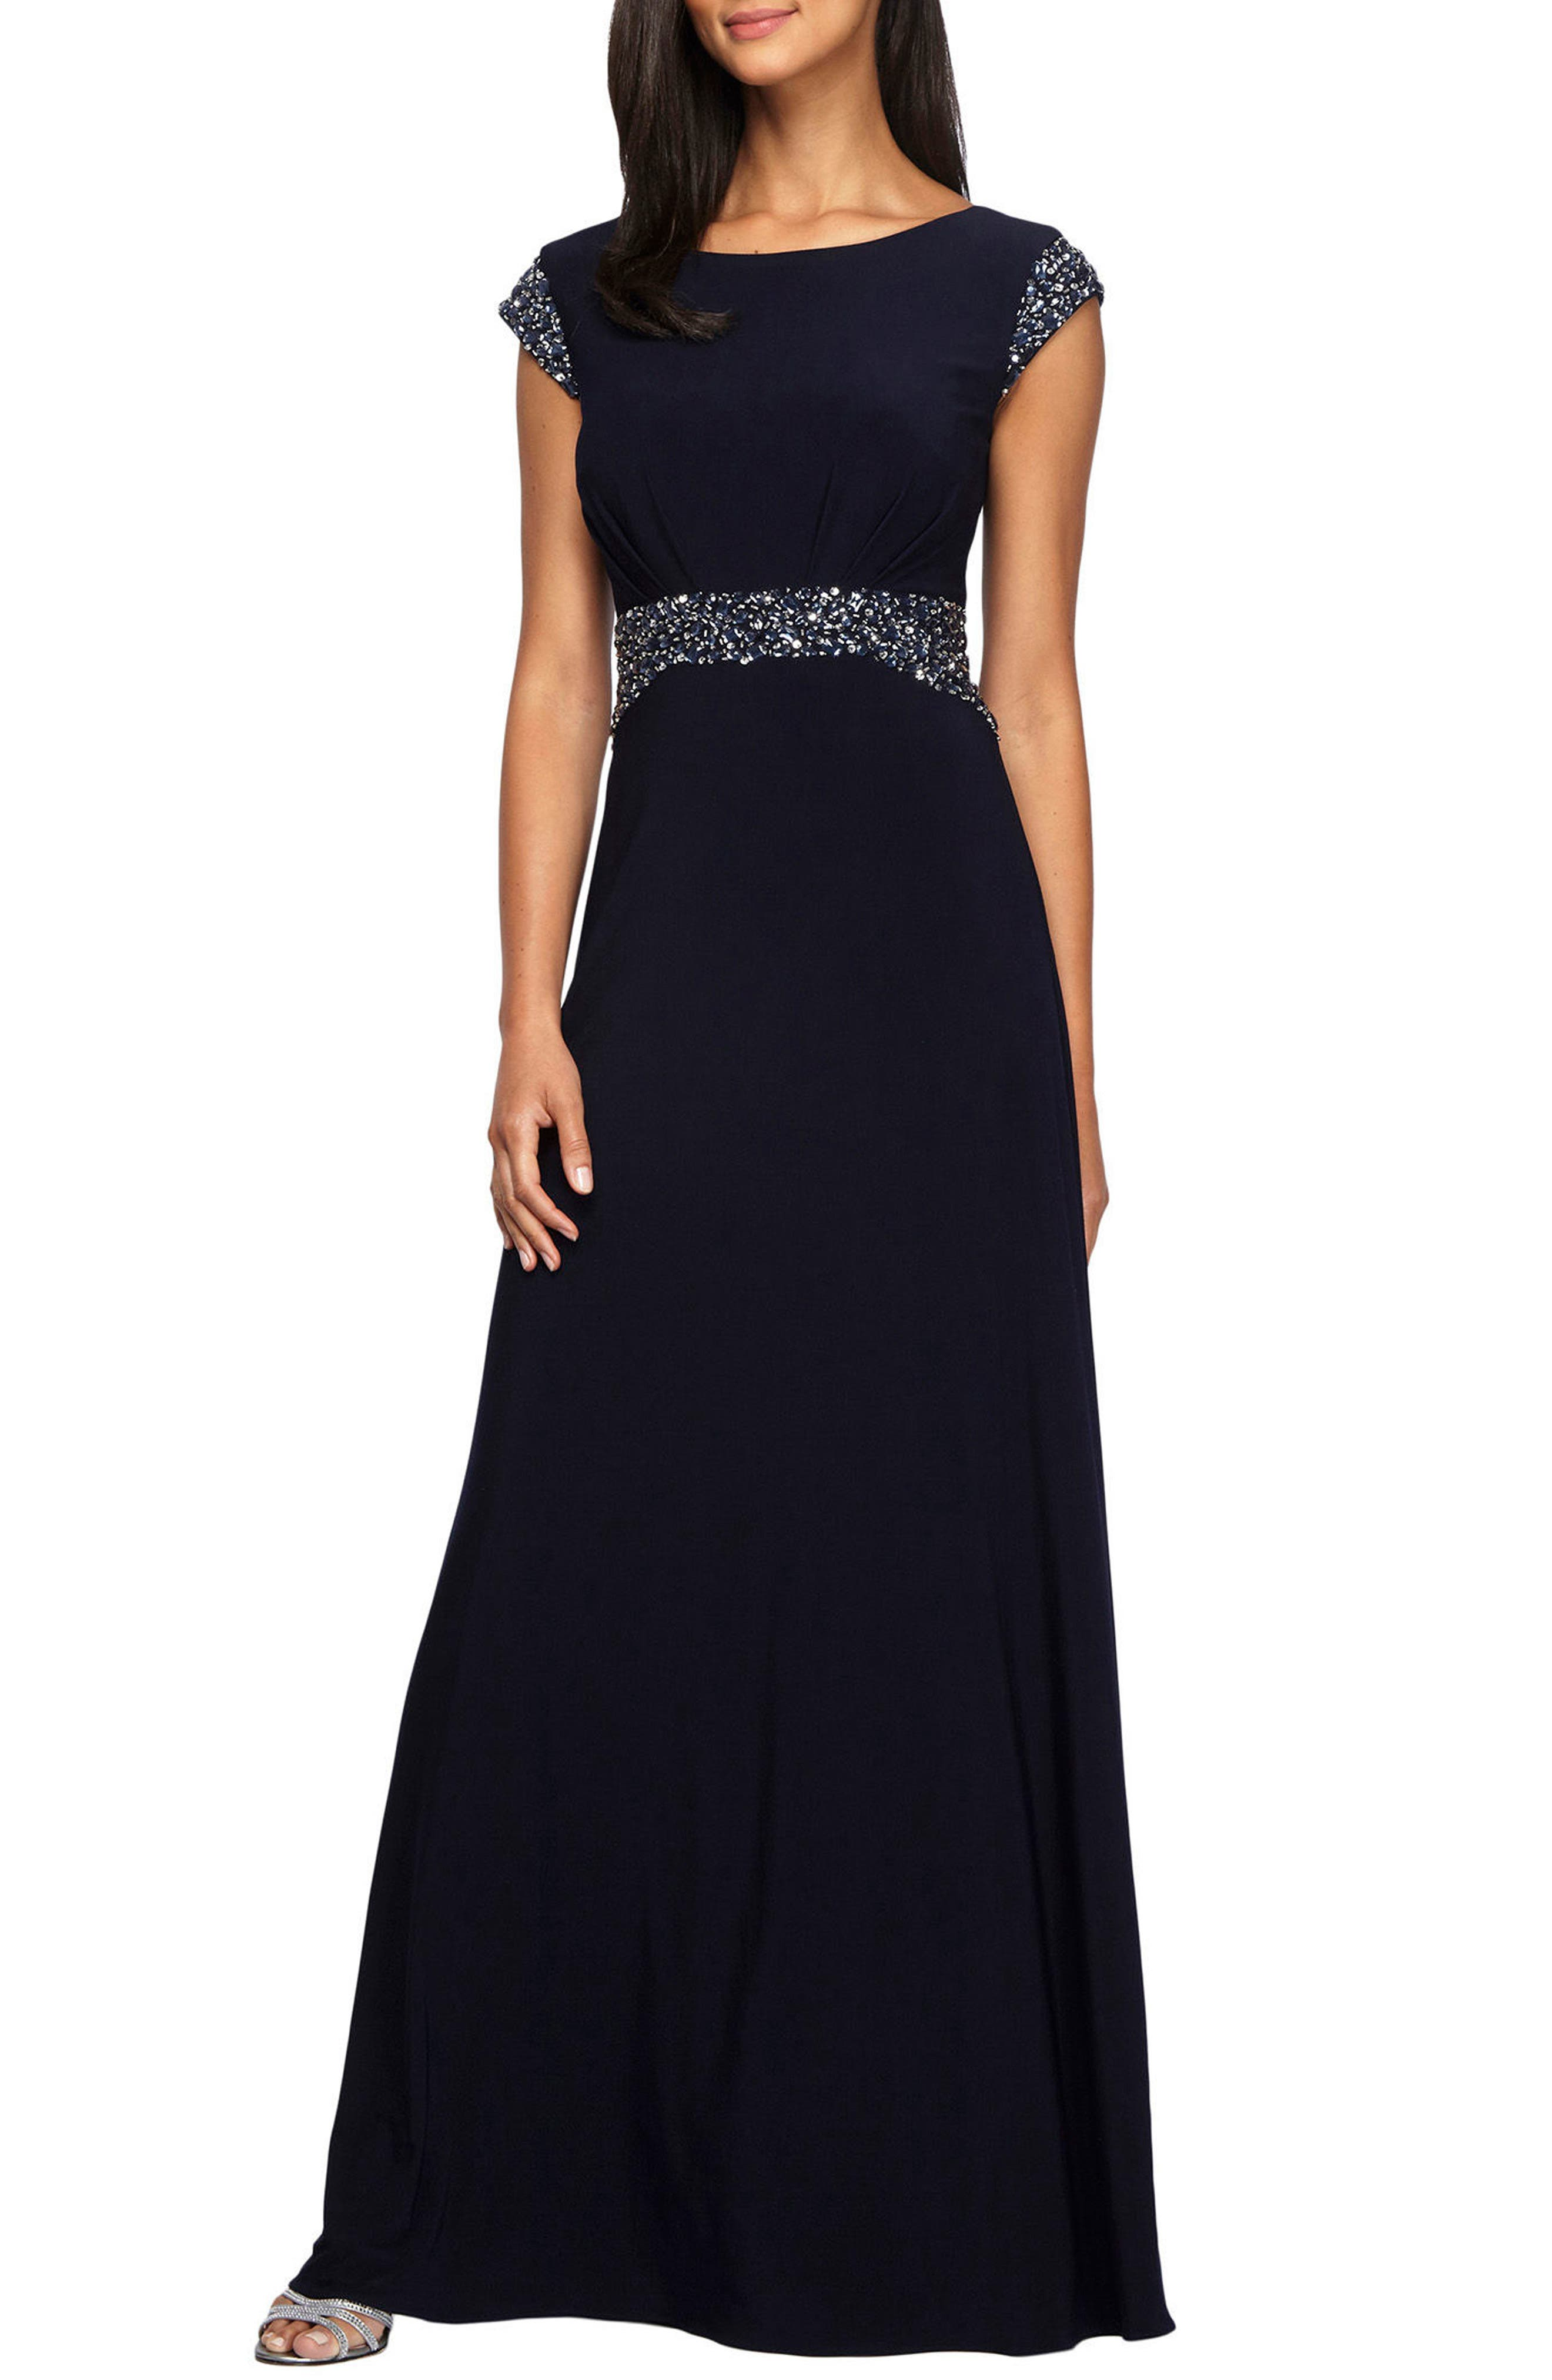 Alternate Image 1 Selected - Alex Evenings Embellished Cap Sleeve A-Line Gown